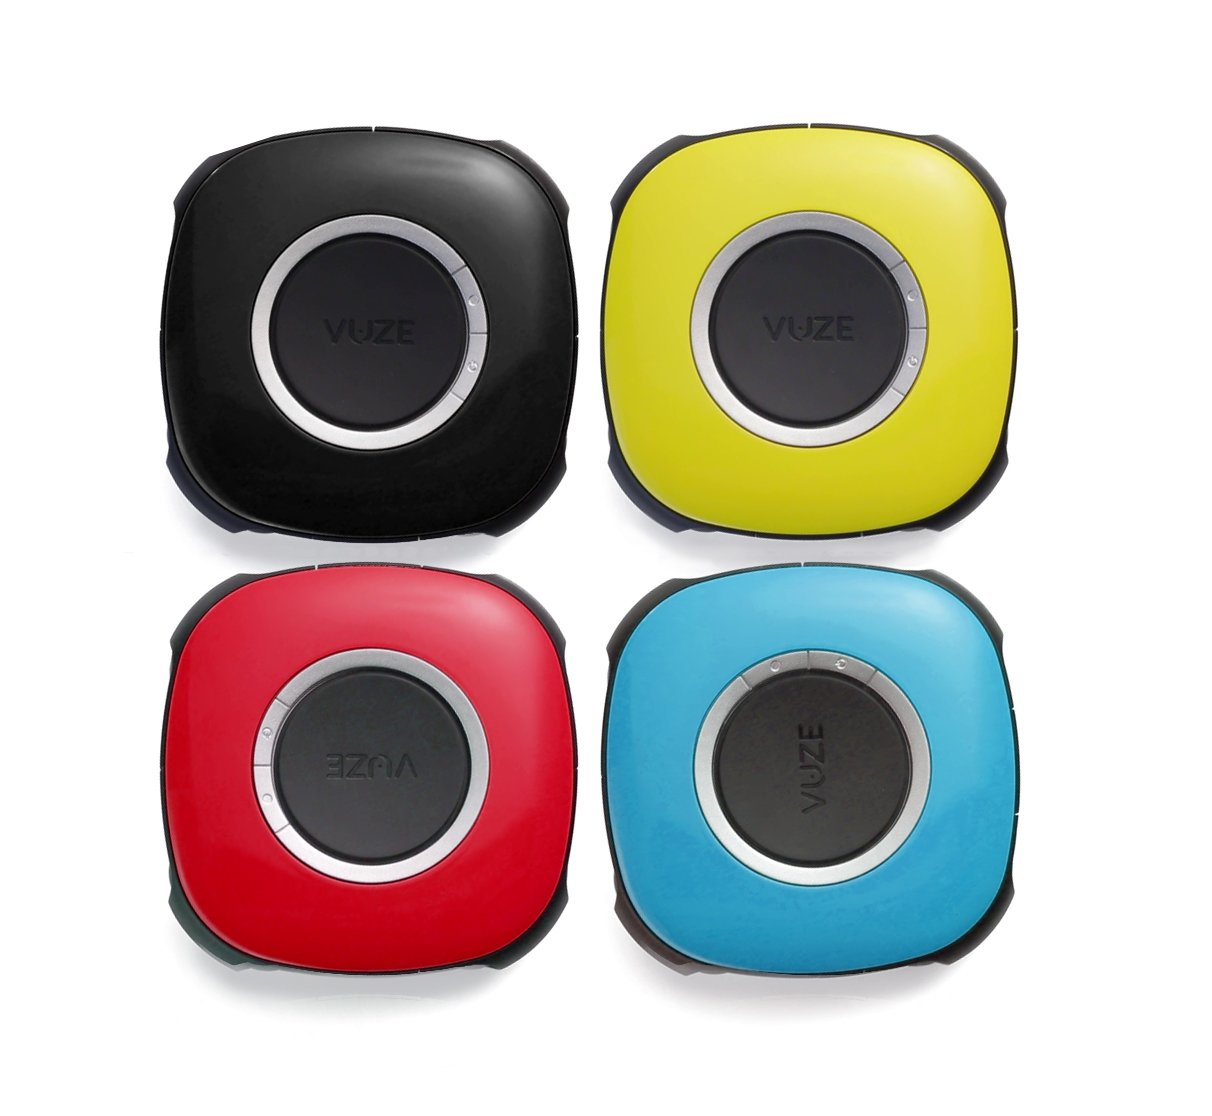 3D virtual reality camera Vuze color options